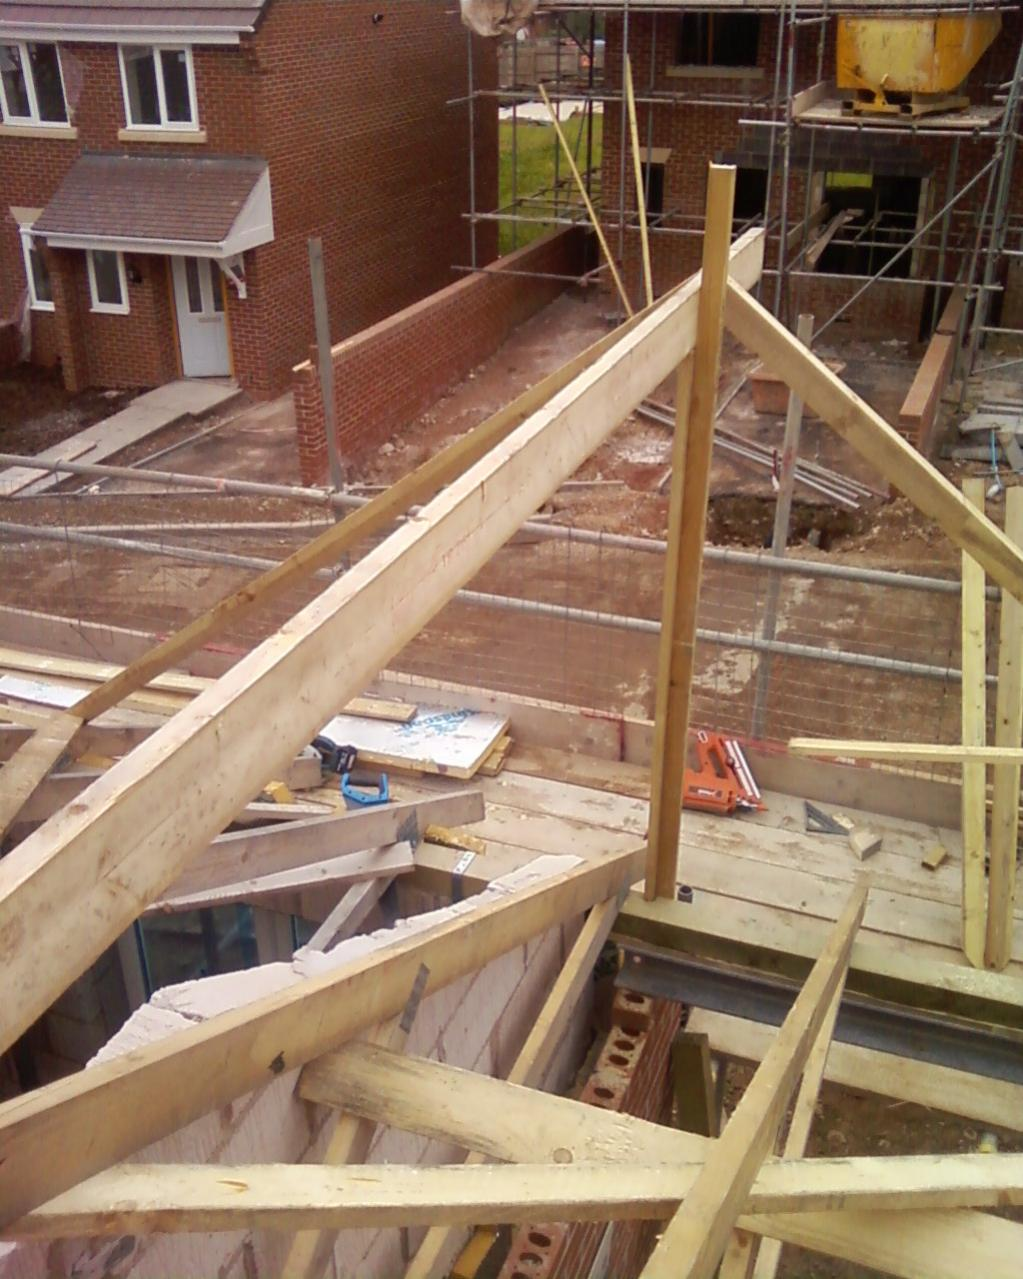 A Small Cut Dormer Roof From The UK - Carpentry Picture ...